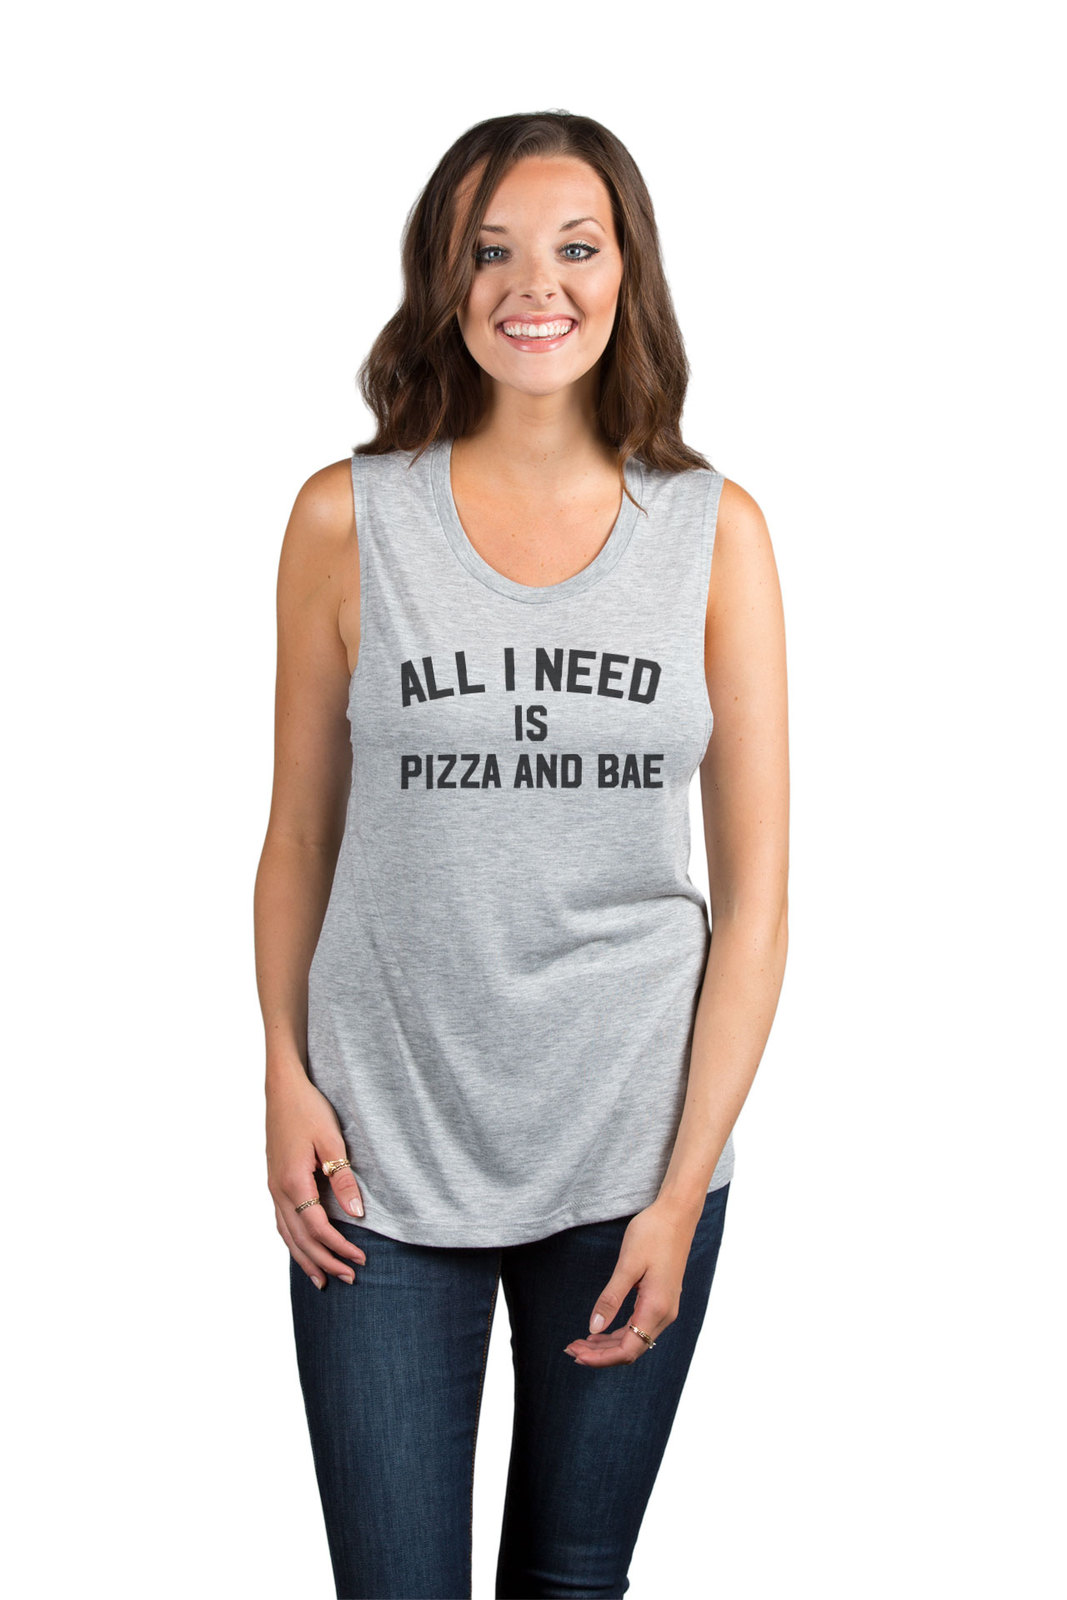 Thread Tank All I Need is Pizza and Bae Women's Sleeveless Muscle Tank Top Tee S